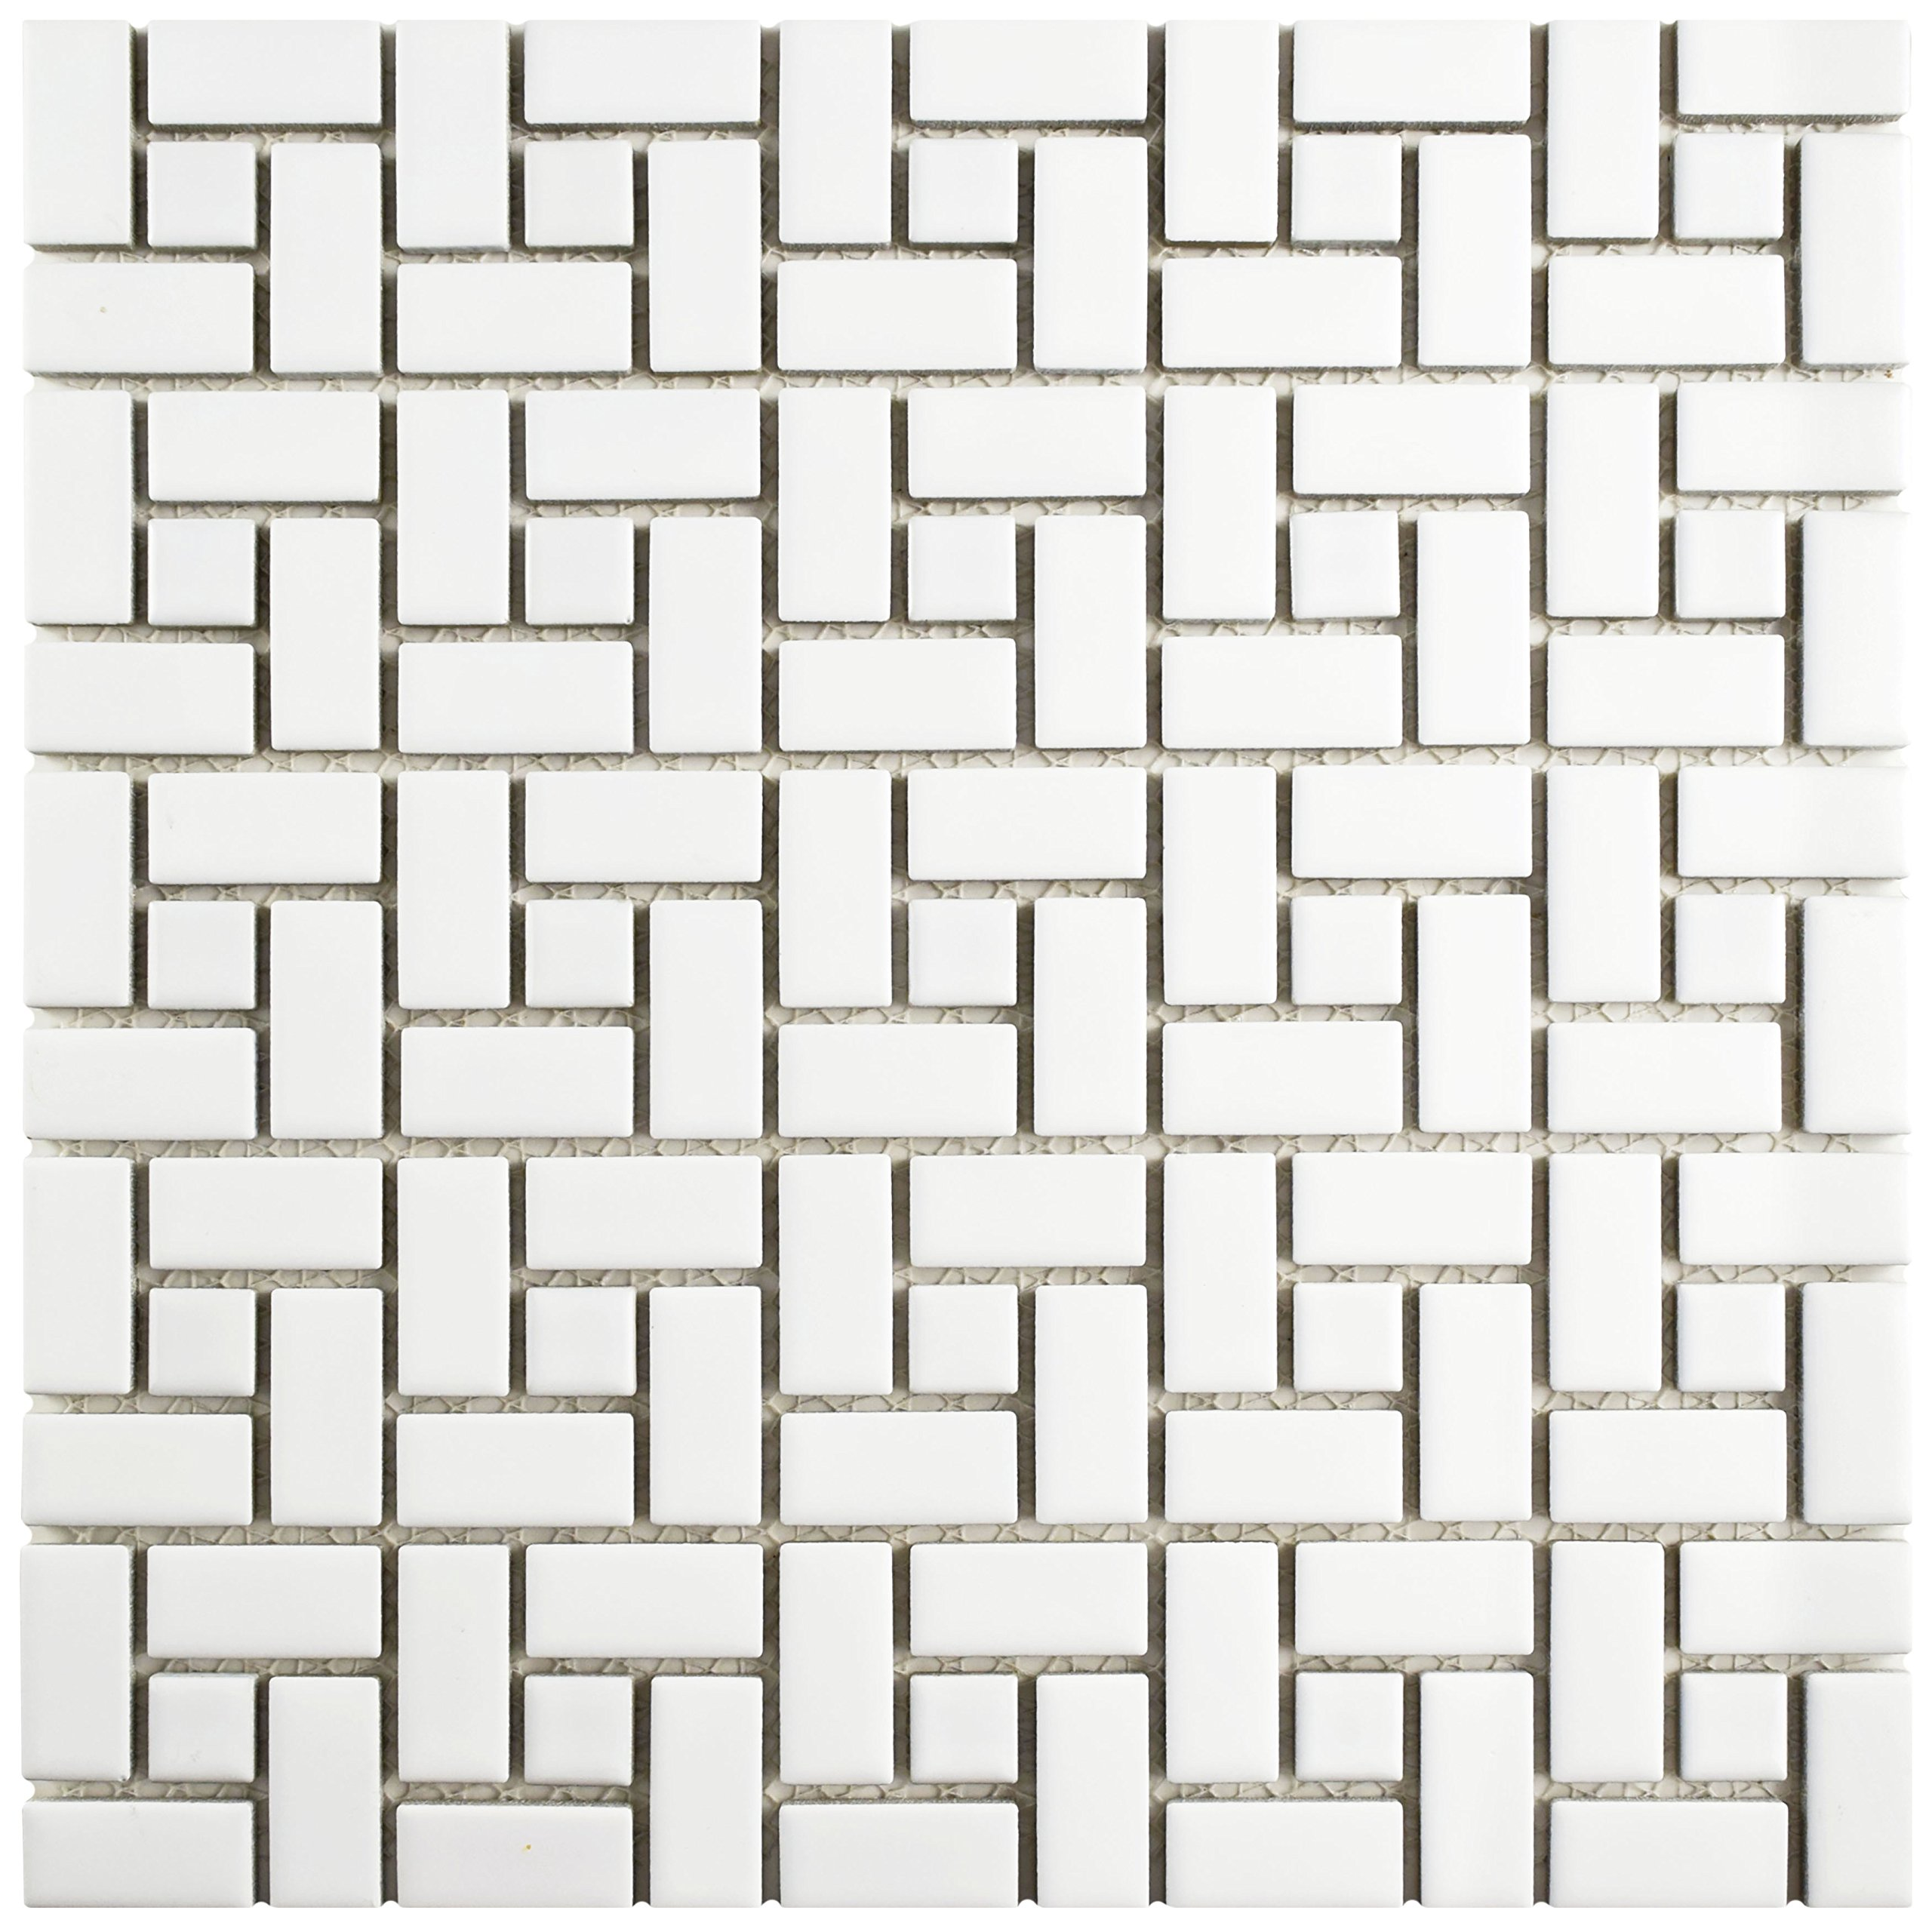 SomerTile FKOMSP21 Retro Spiral Porcelain Mosaic Floor and Wall Tile, 12.5'' x 12.5'', Matte Glossy White, 10 Piece by SOMERTILE